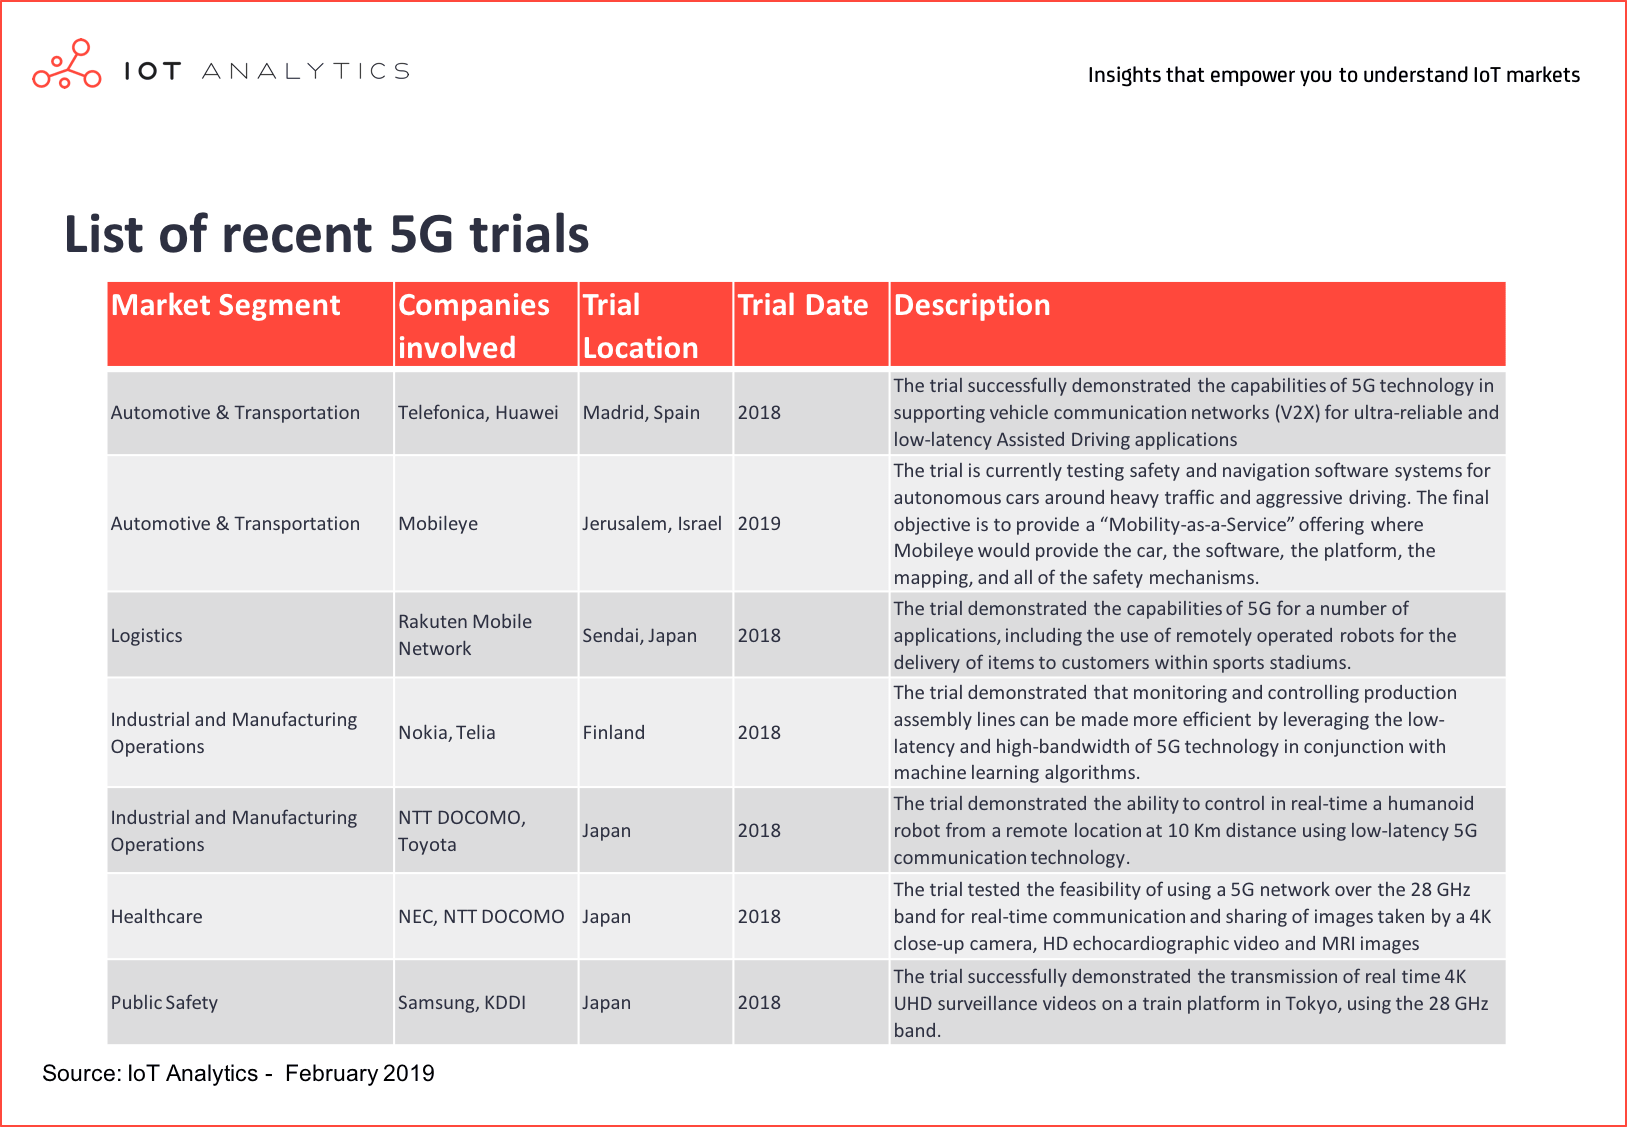 Intelligent Connectivity - List of recent 5G trials